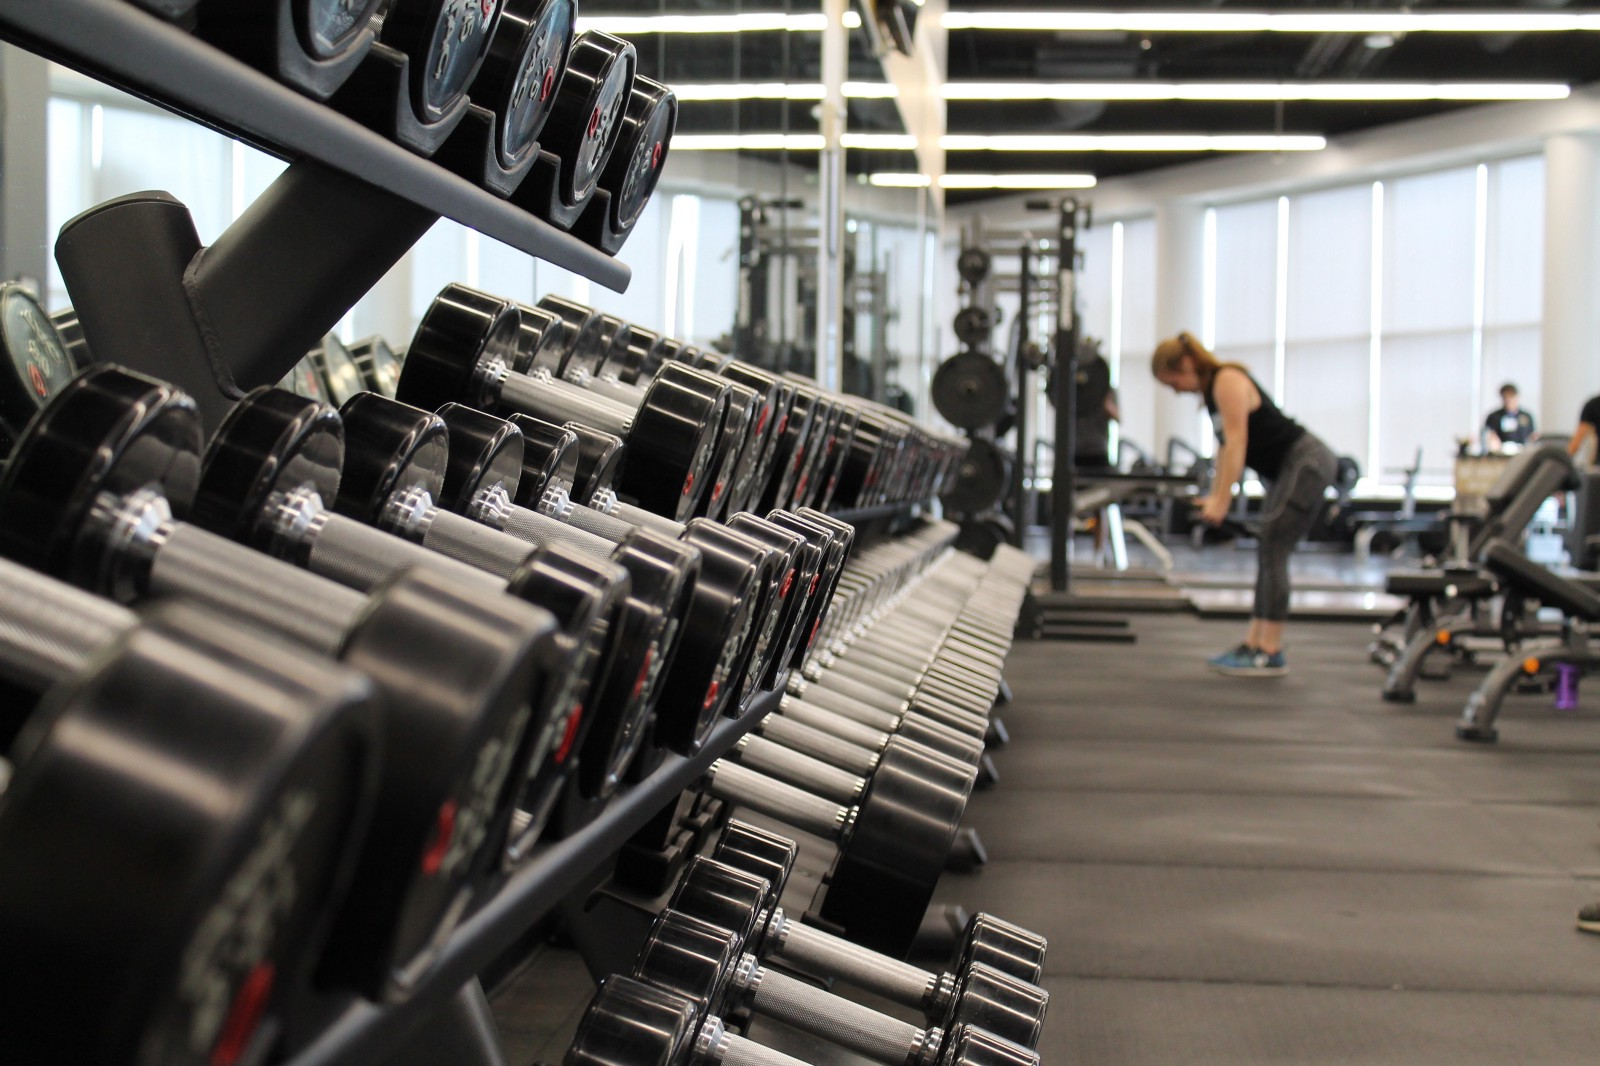 The gym personalities learning gym etiquette breaking muscle